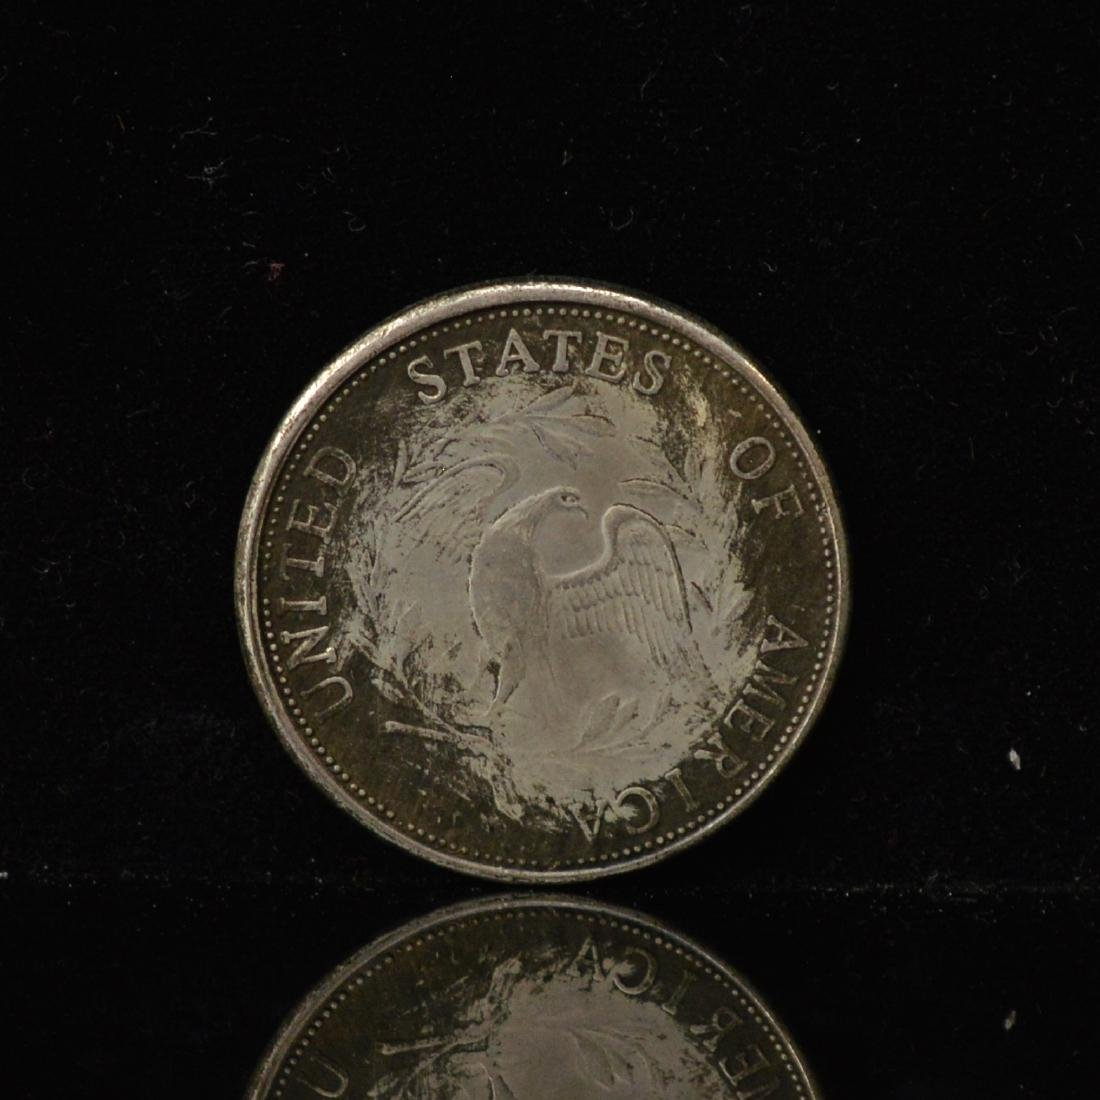 A1796 US libery Silver coins and A 1865 5 Francs coin - 3